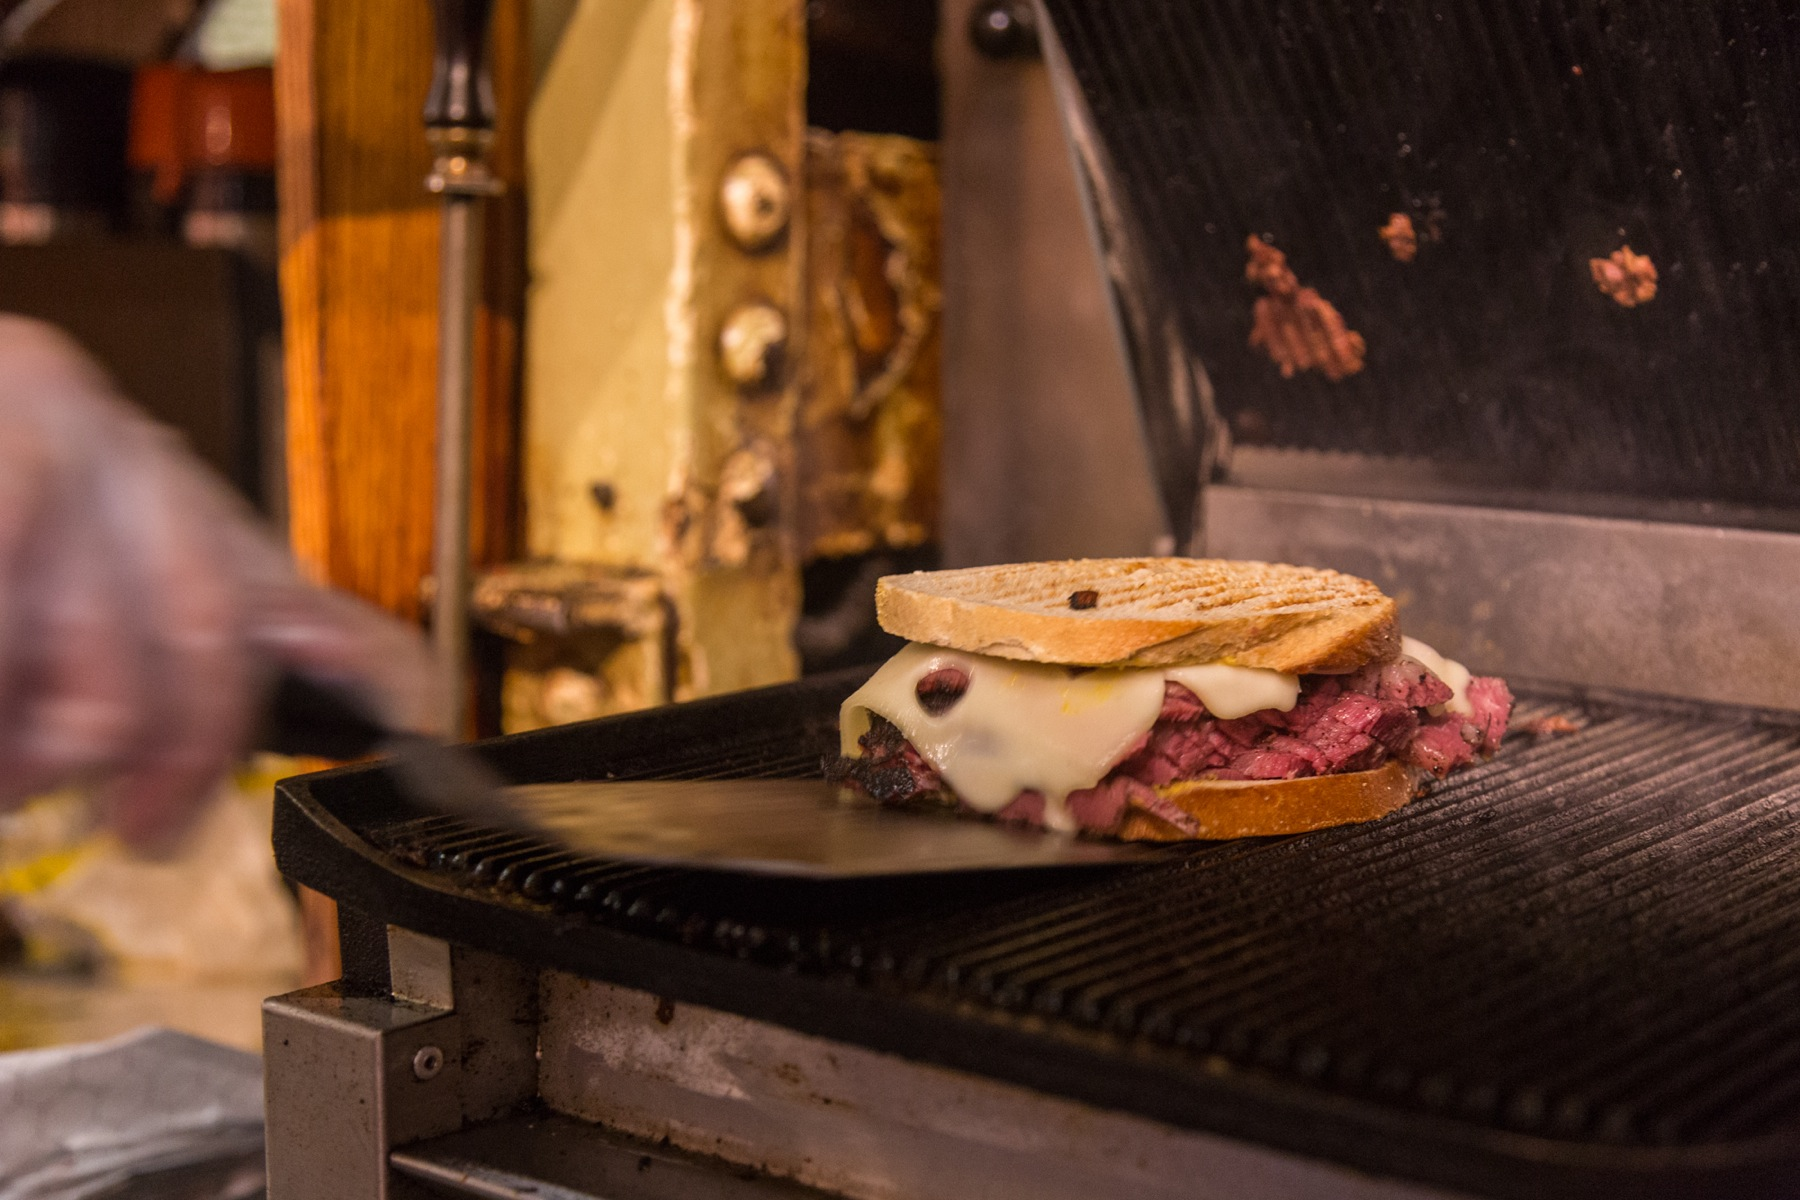 A grilled Pastrami special is taken from the grill.